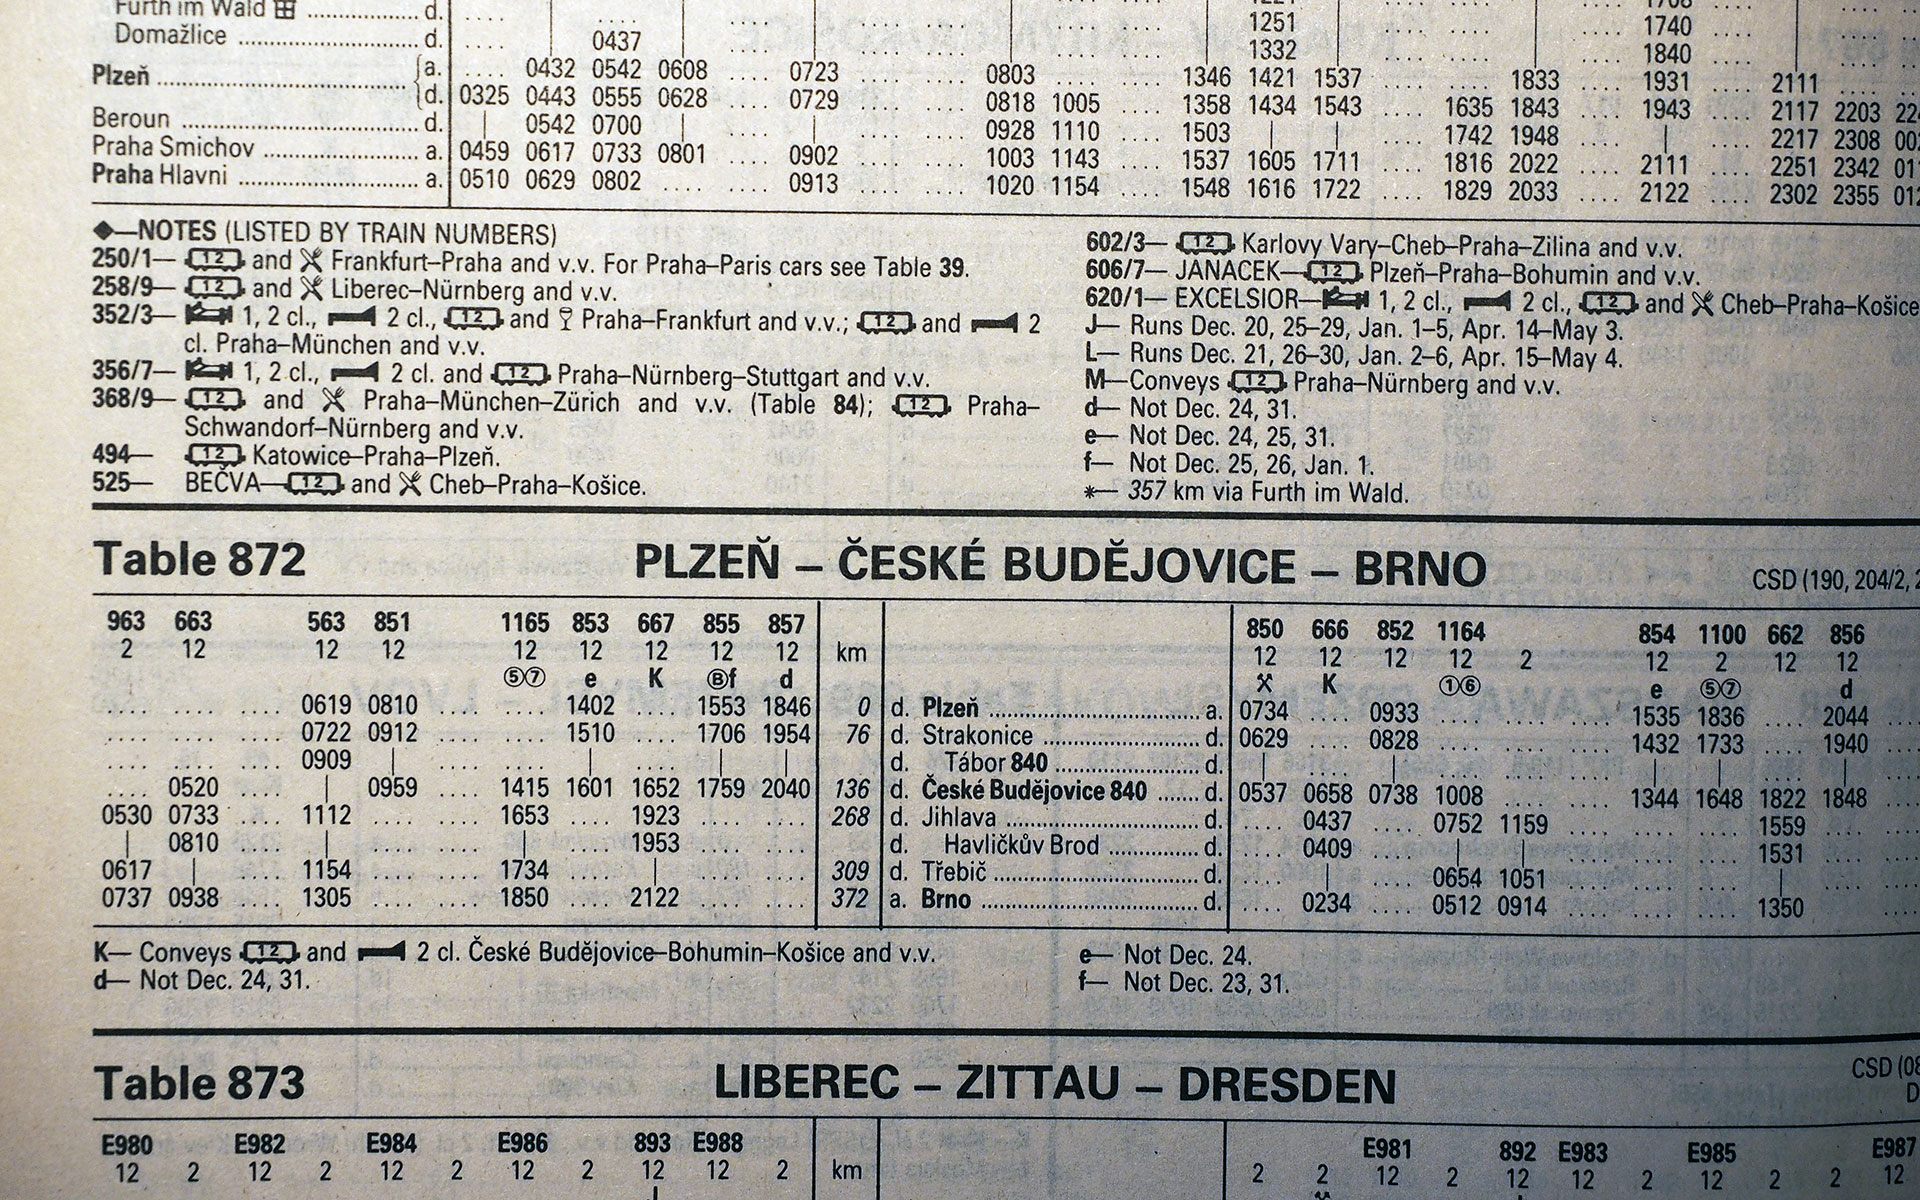 Old timetables are often discarded, but those which are archived in libraries preserve elements of social history and transport history of importance to future generations. Our image shows an extract from a 1991 copy of the Thomas Cook European Rail Timetable.